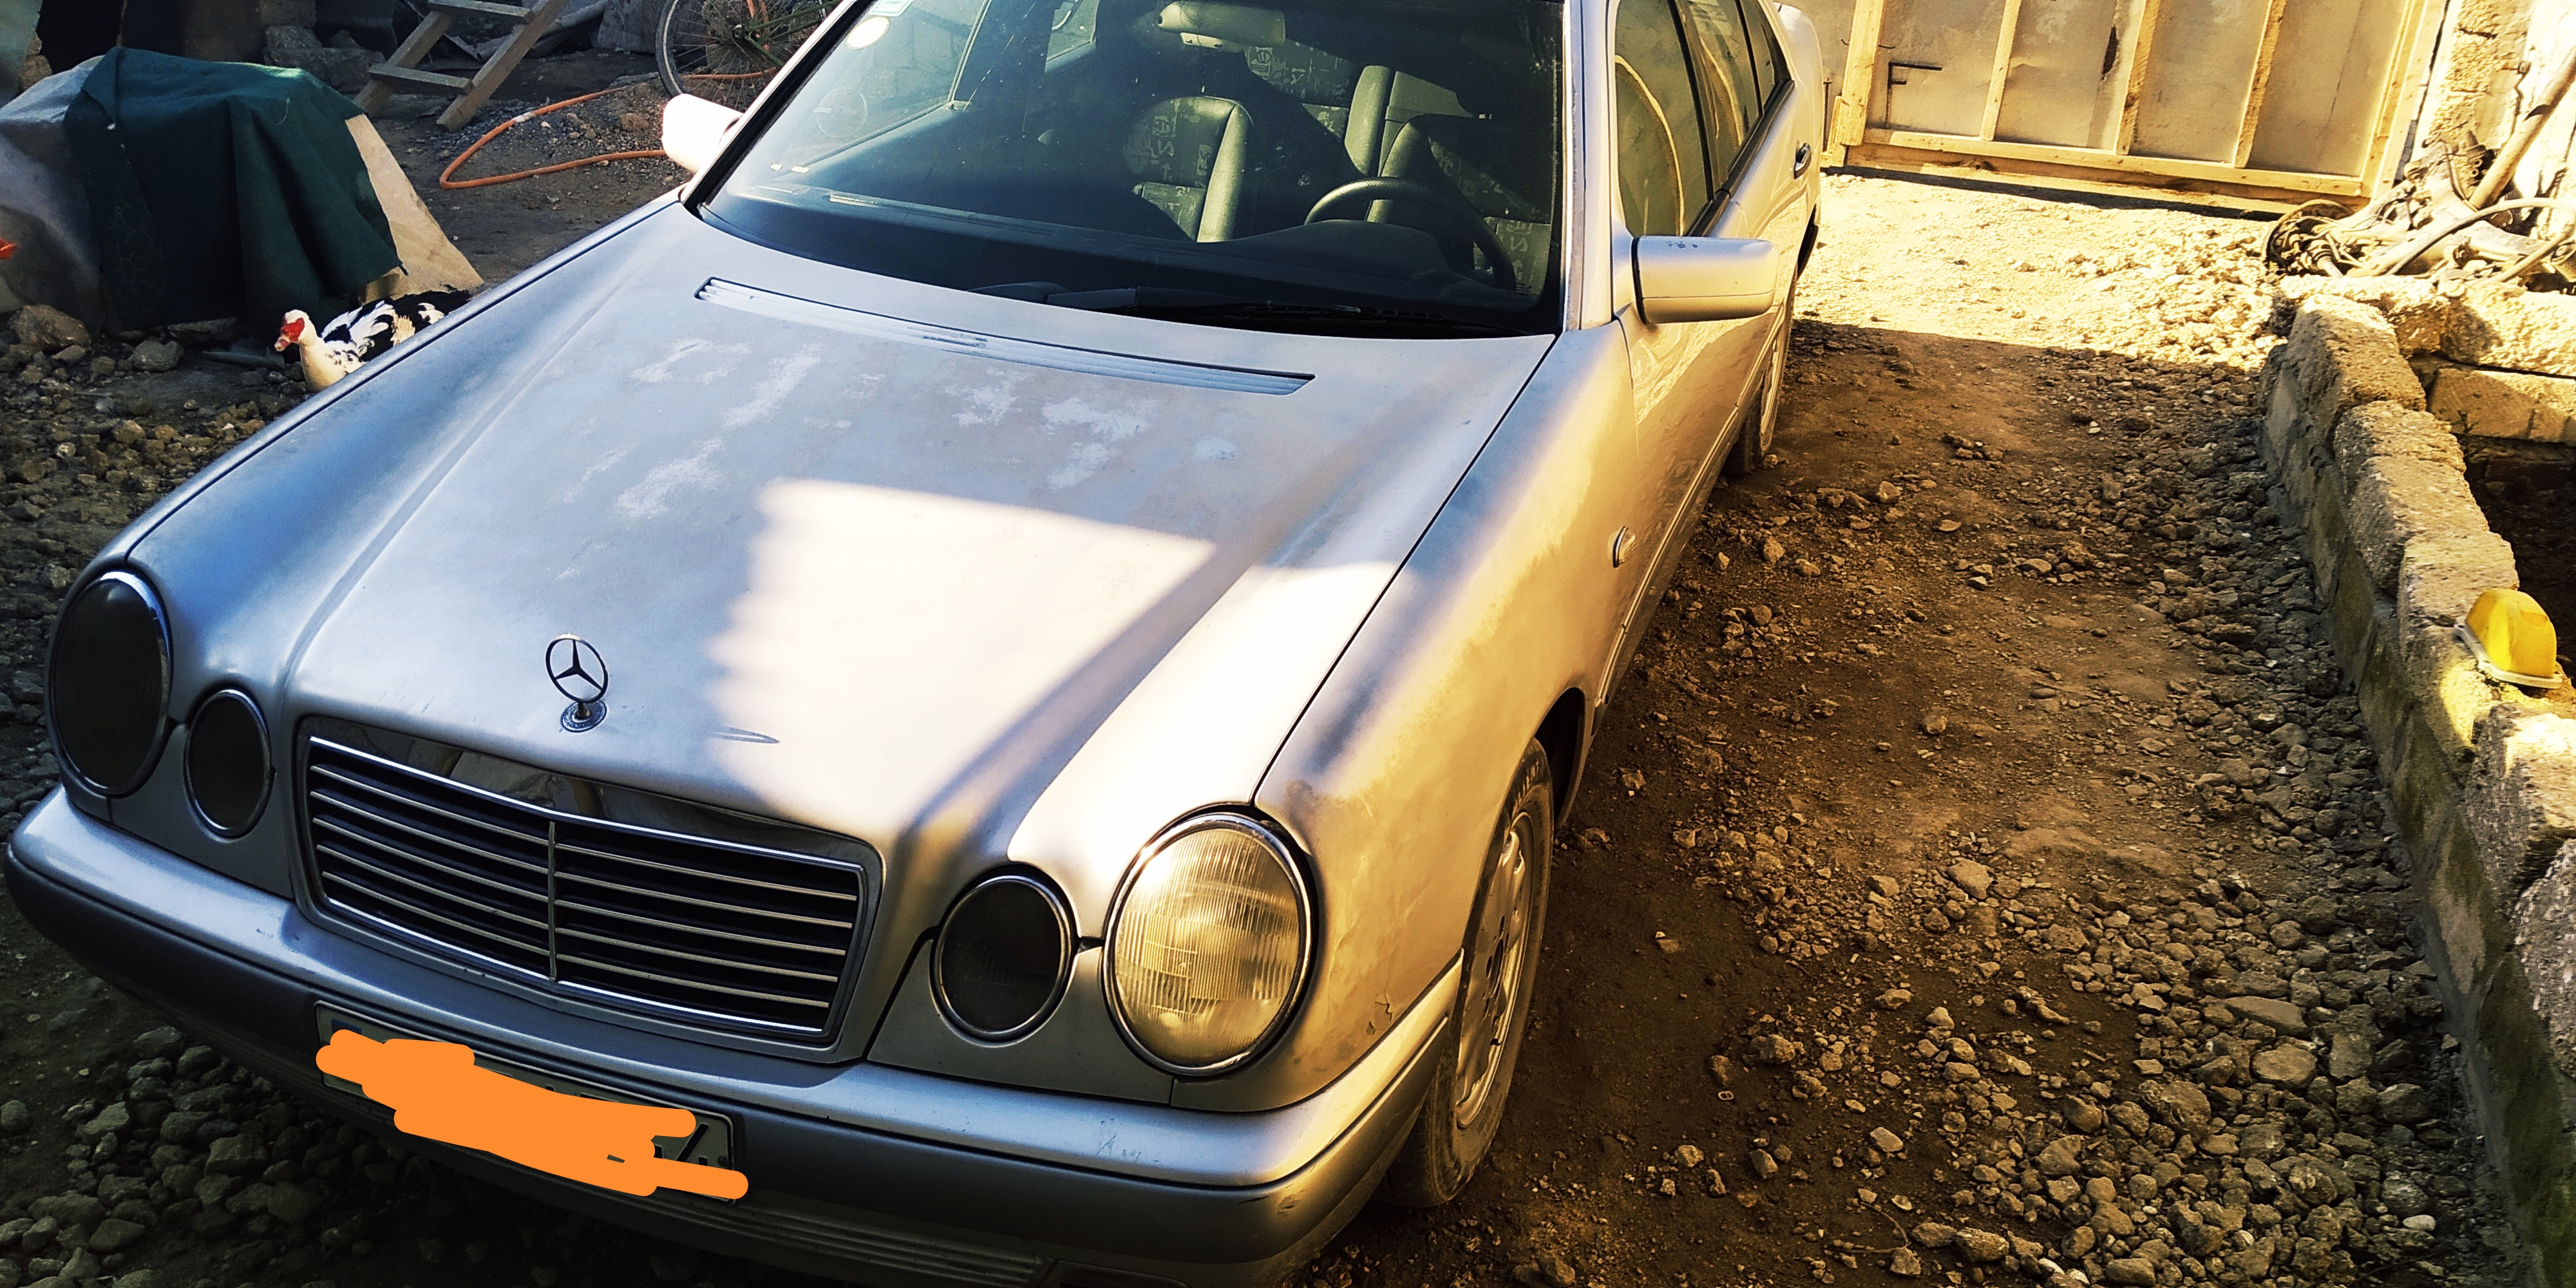 Mercedes-Benz E 300 3.0(lt) 1996 Second hand  $8900